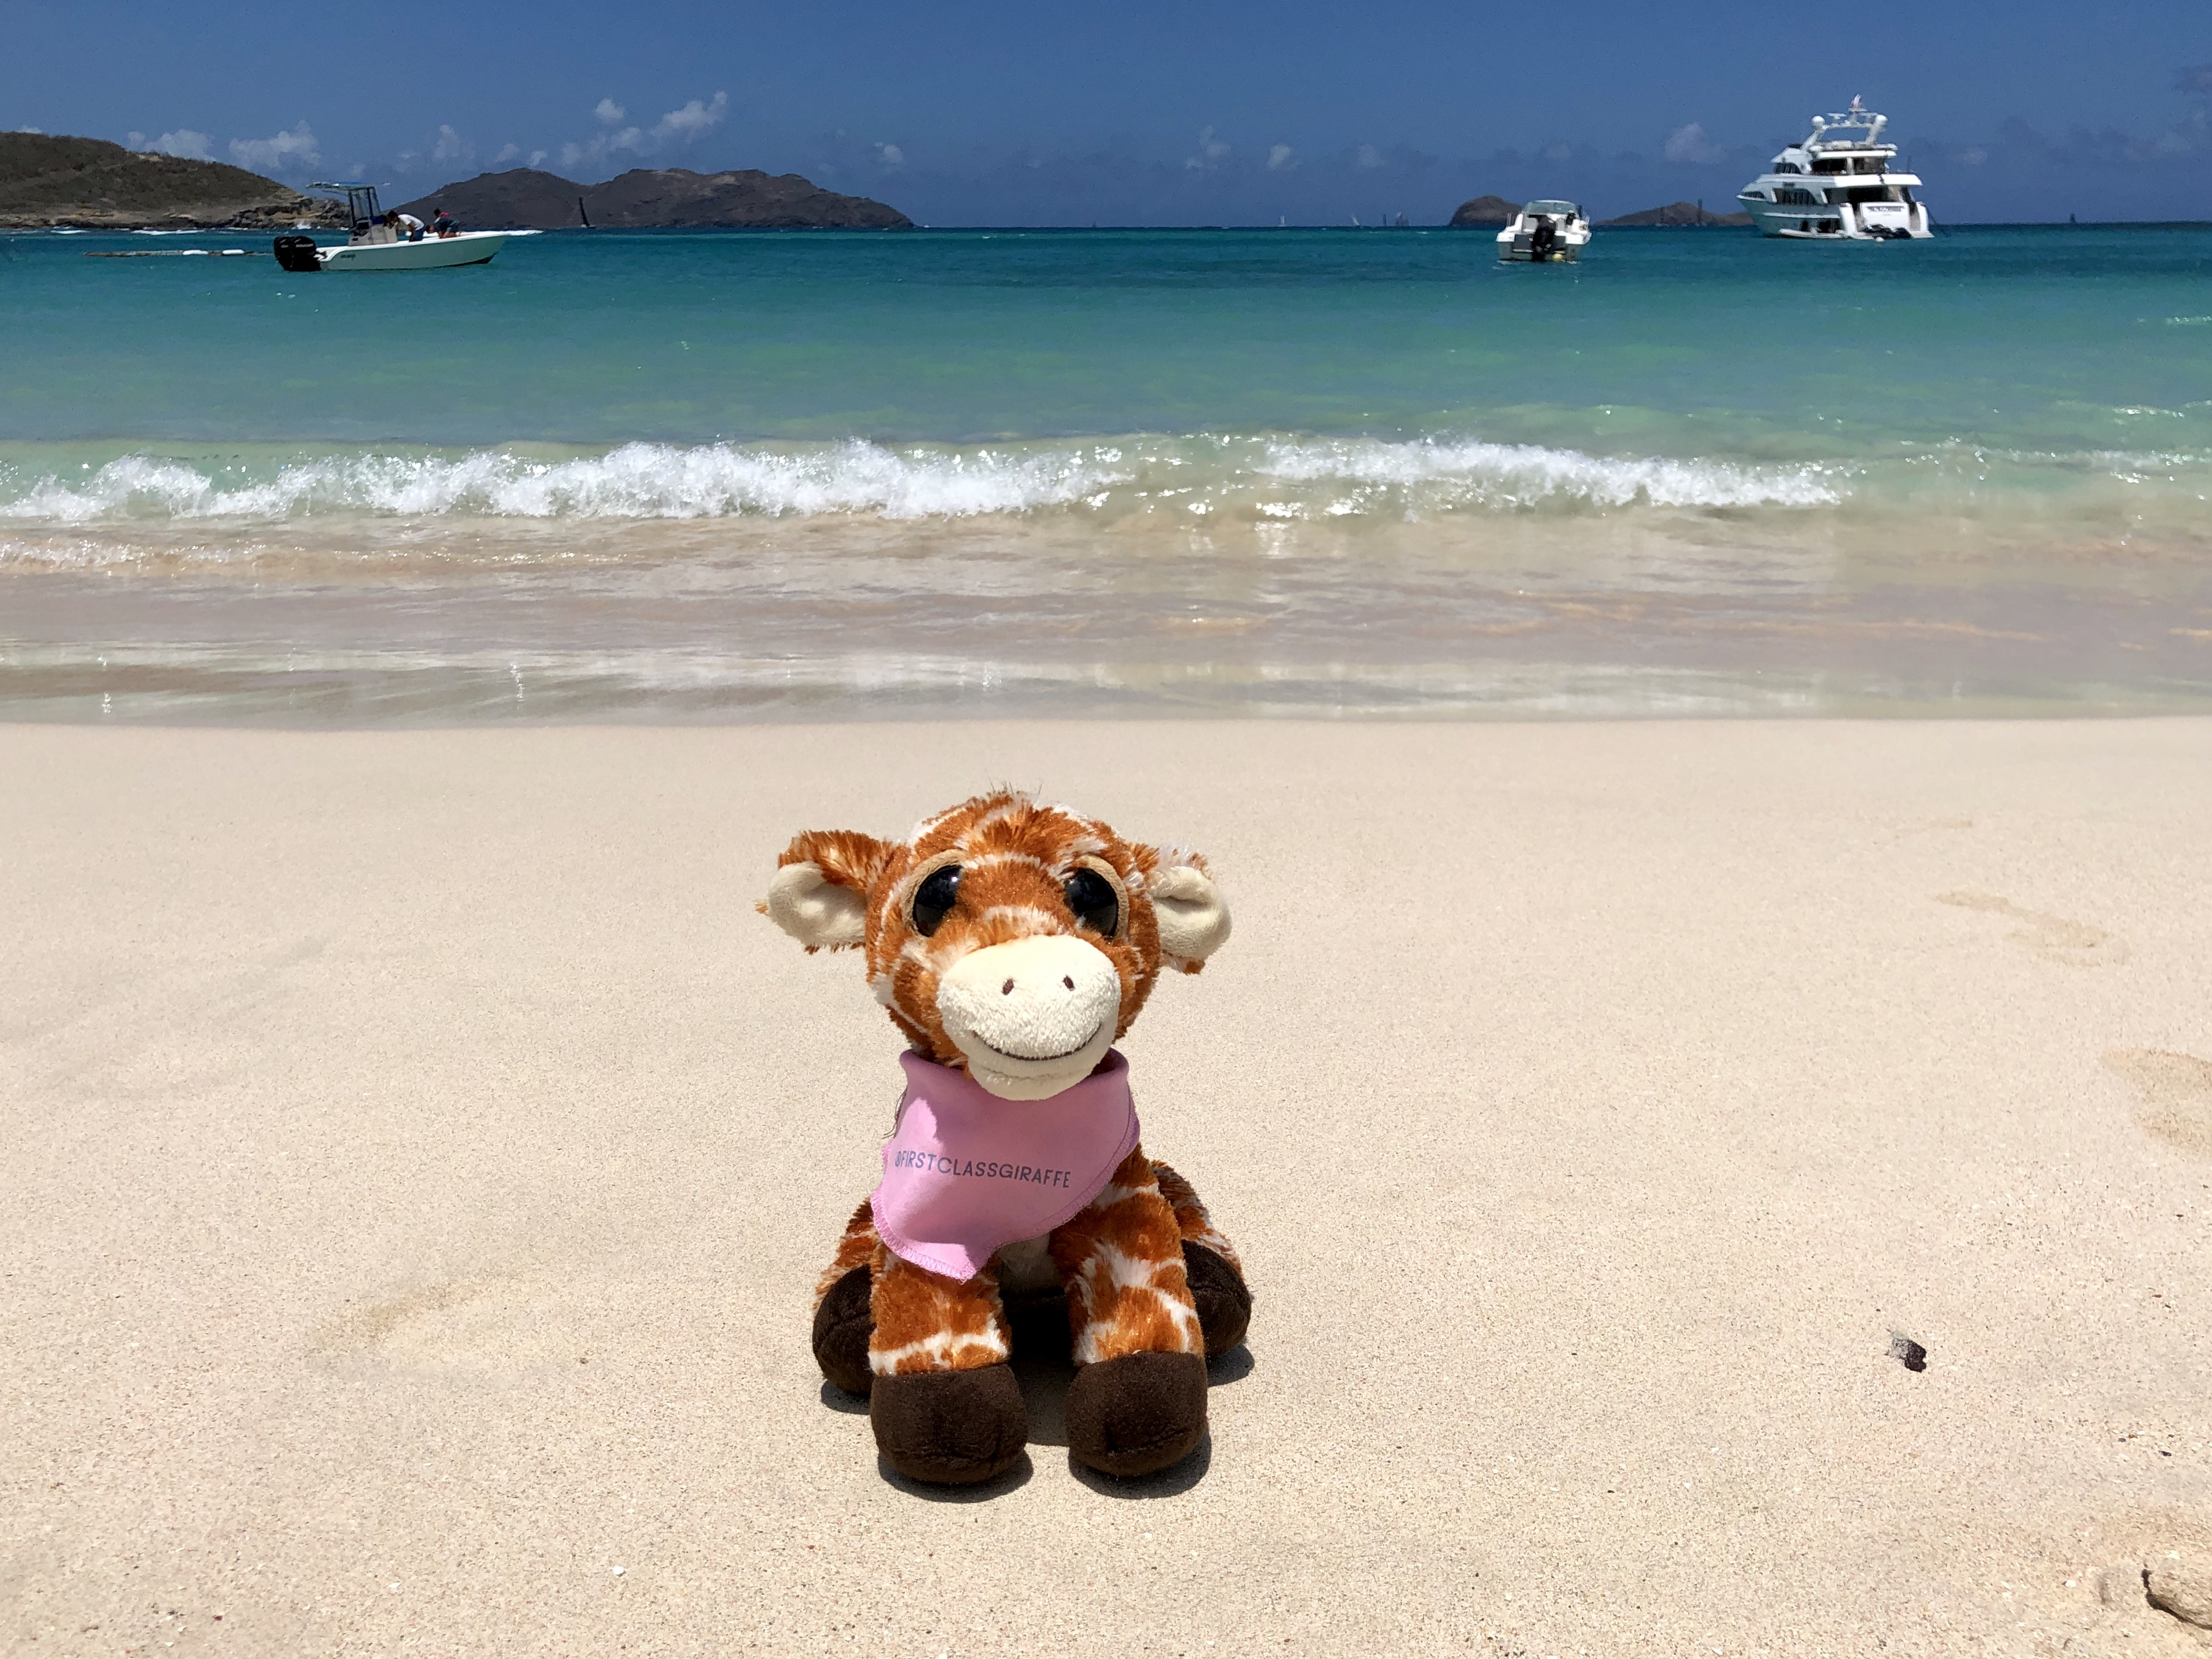 First Class Giraffe in Saint Barthélemy